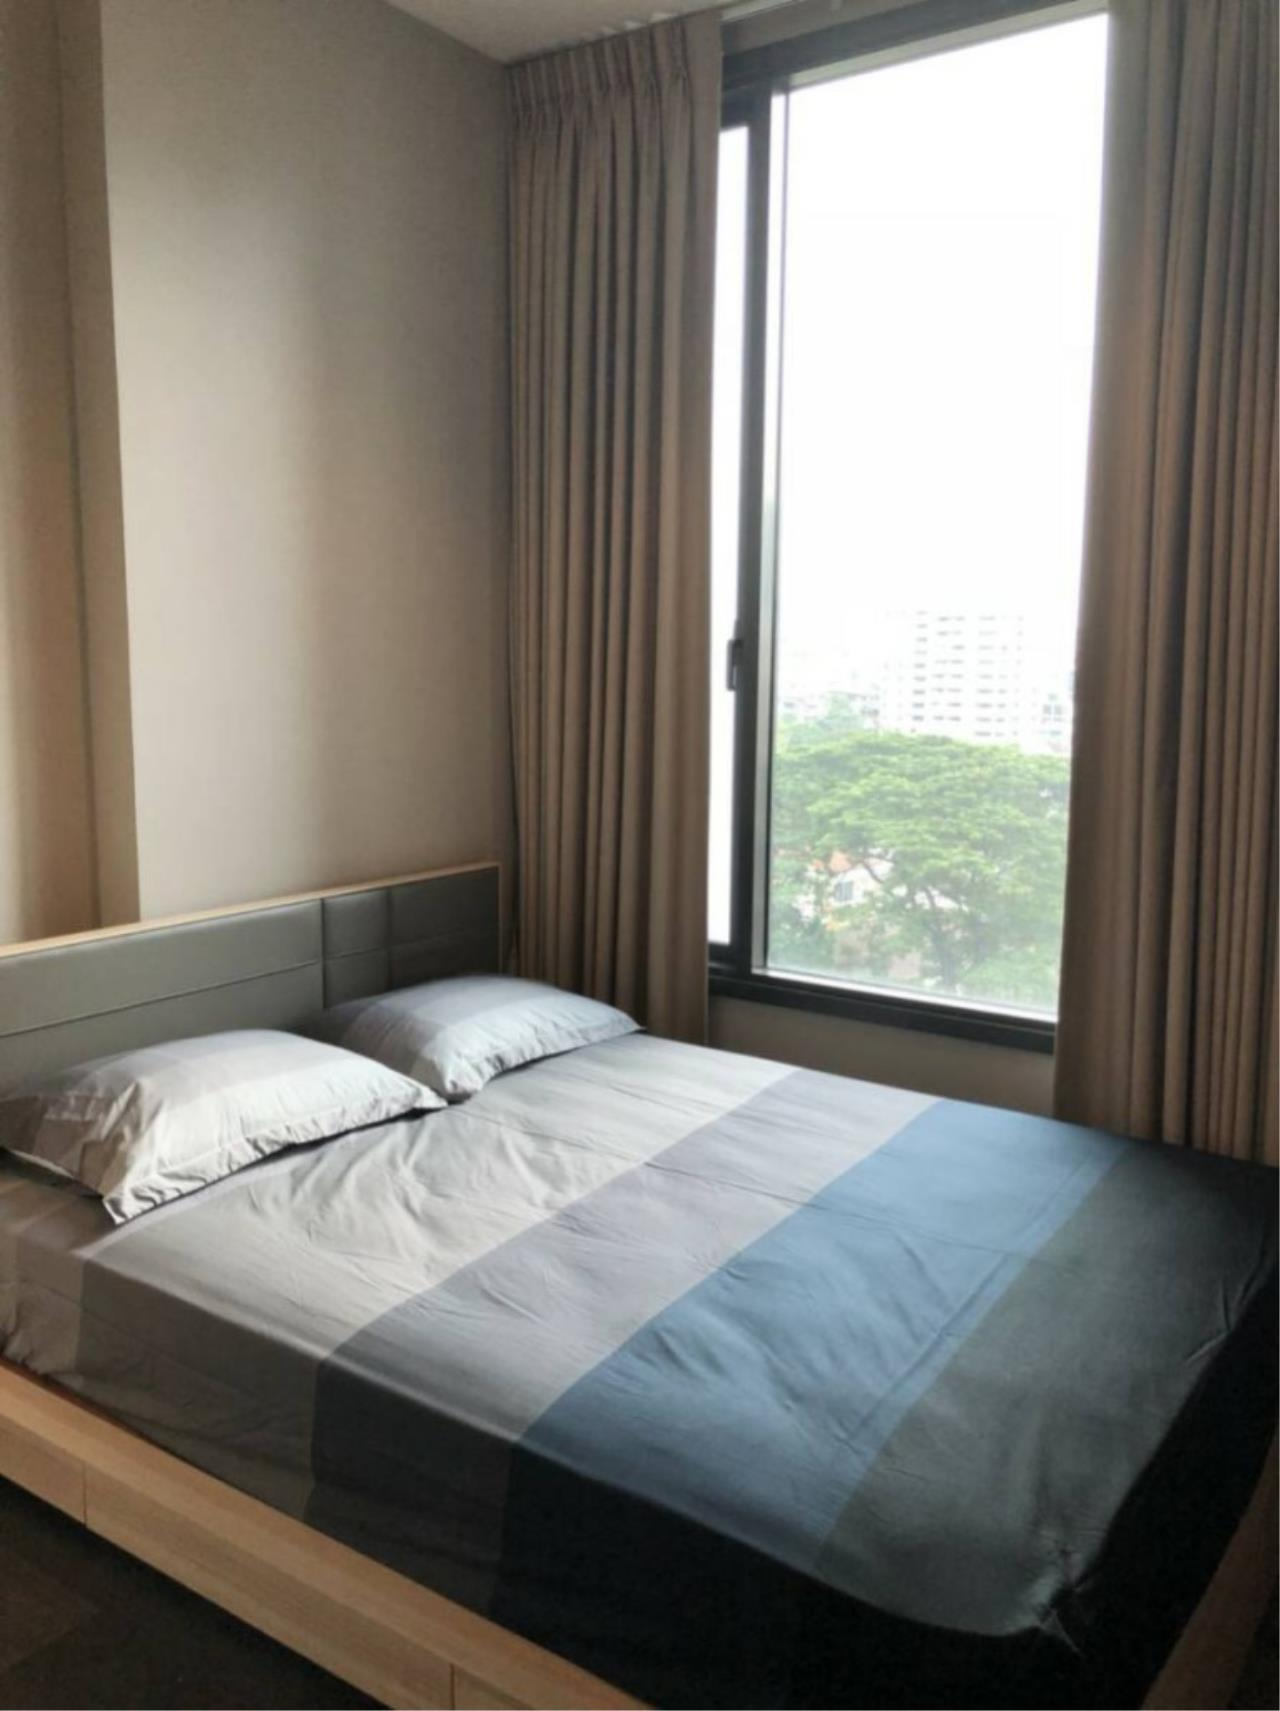 Century21 Skylux Agency's Edge Sukhumvit 23 / Condo For Sale / 1 Bedroom / 31 SQM / BTS Asok / Bangkok 3